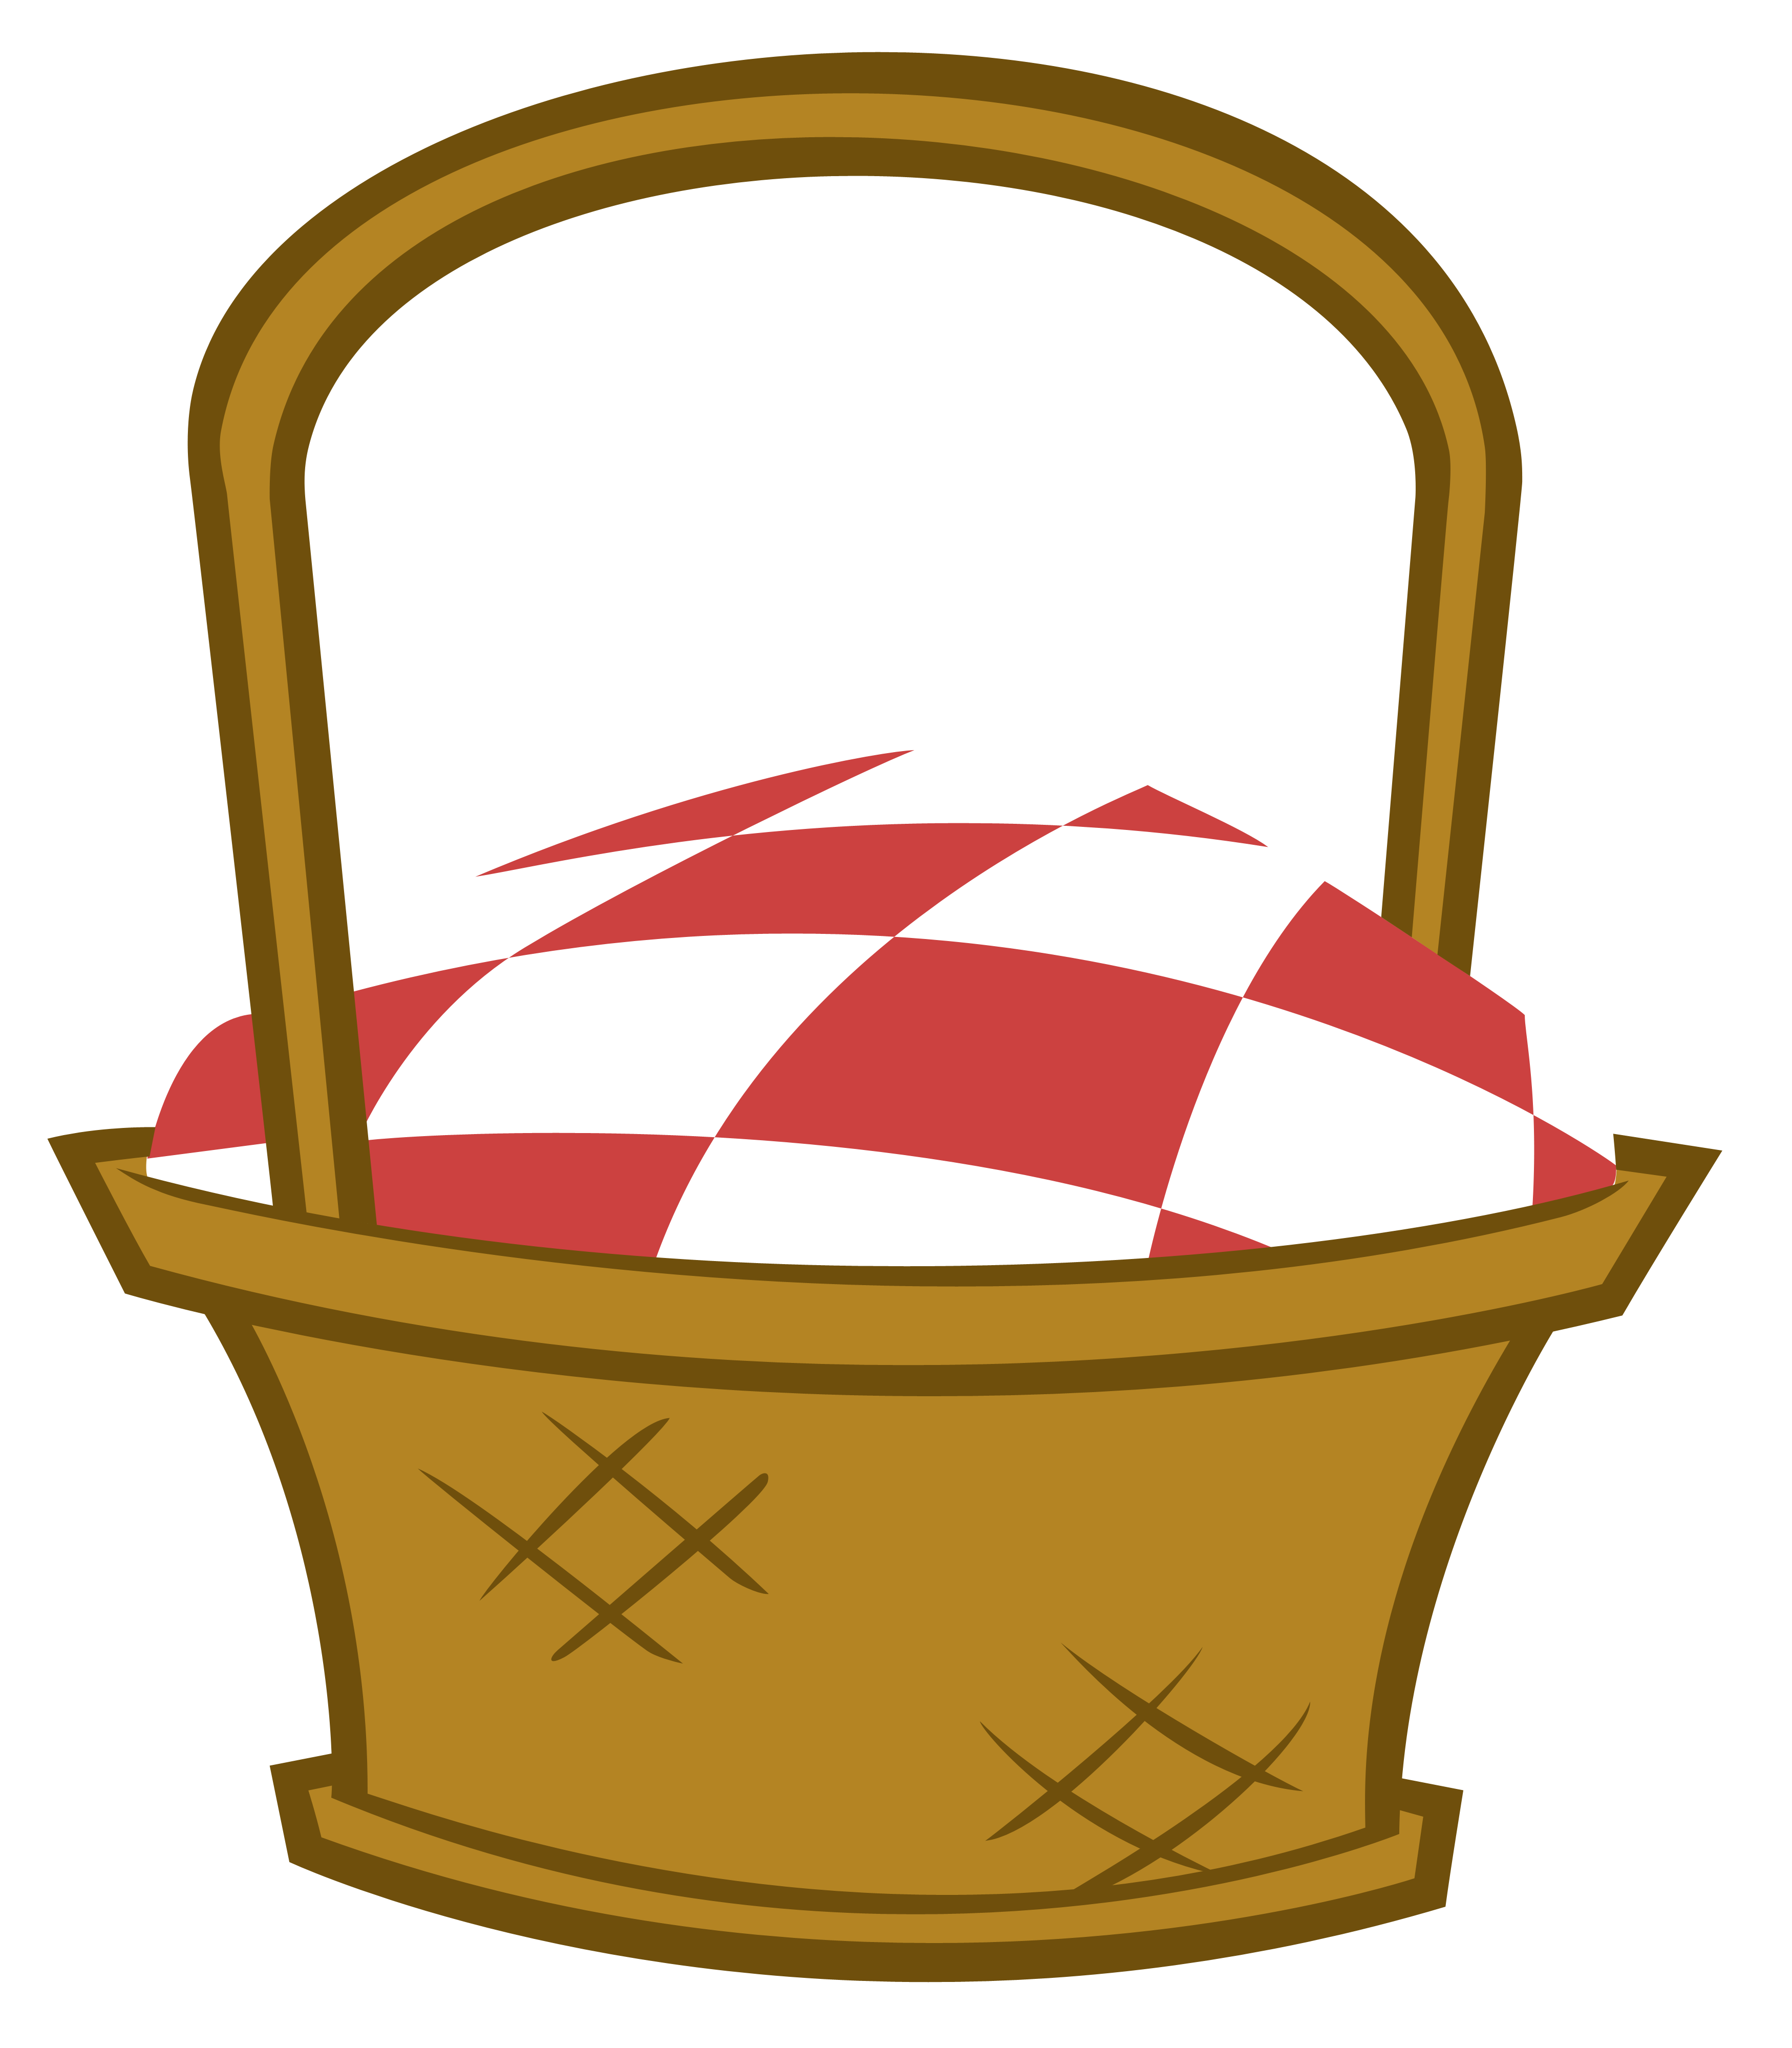 Basket clipart #1, Download drawings